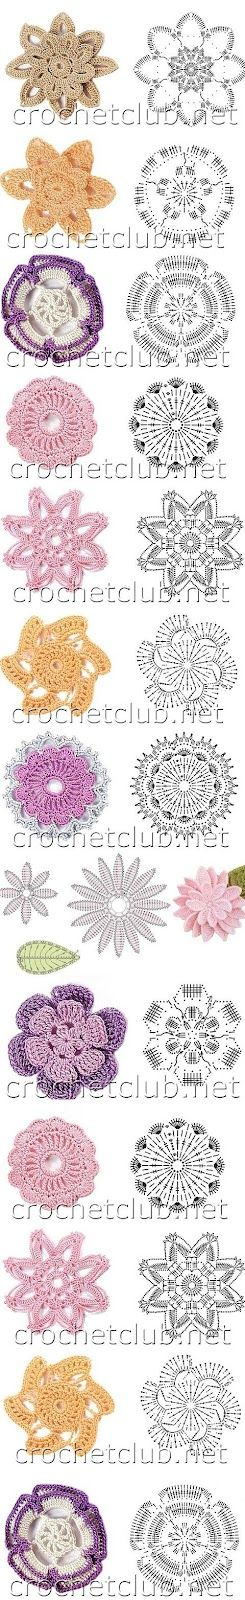 Recipes Crochet: Flores of crochet